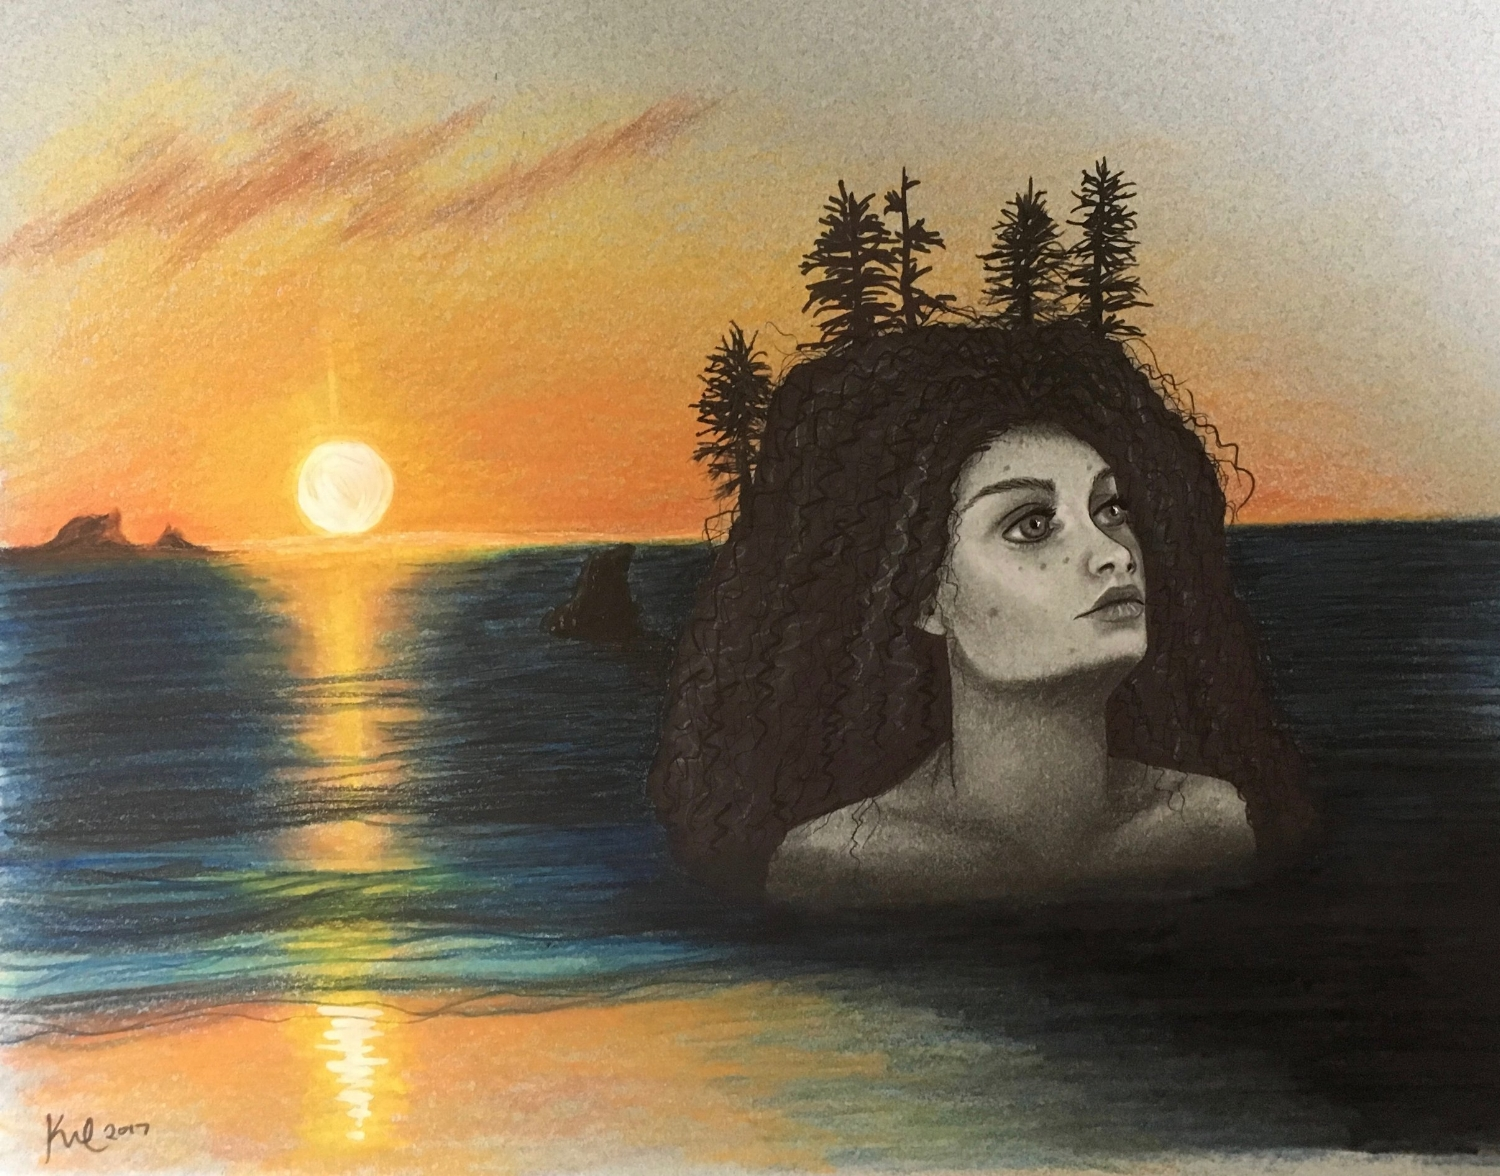 second beach woman illustration